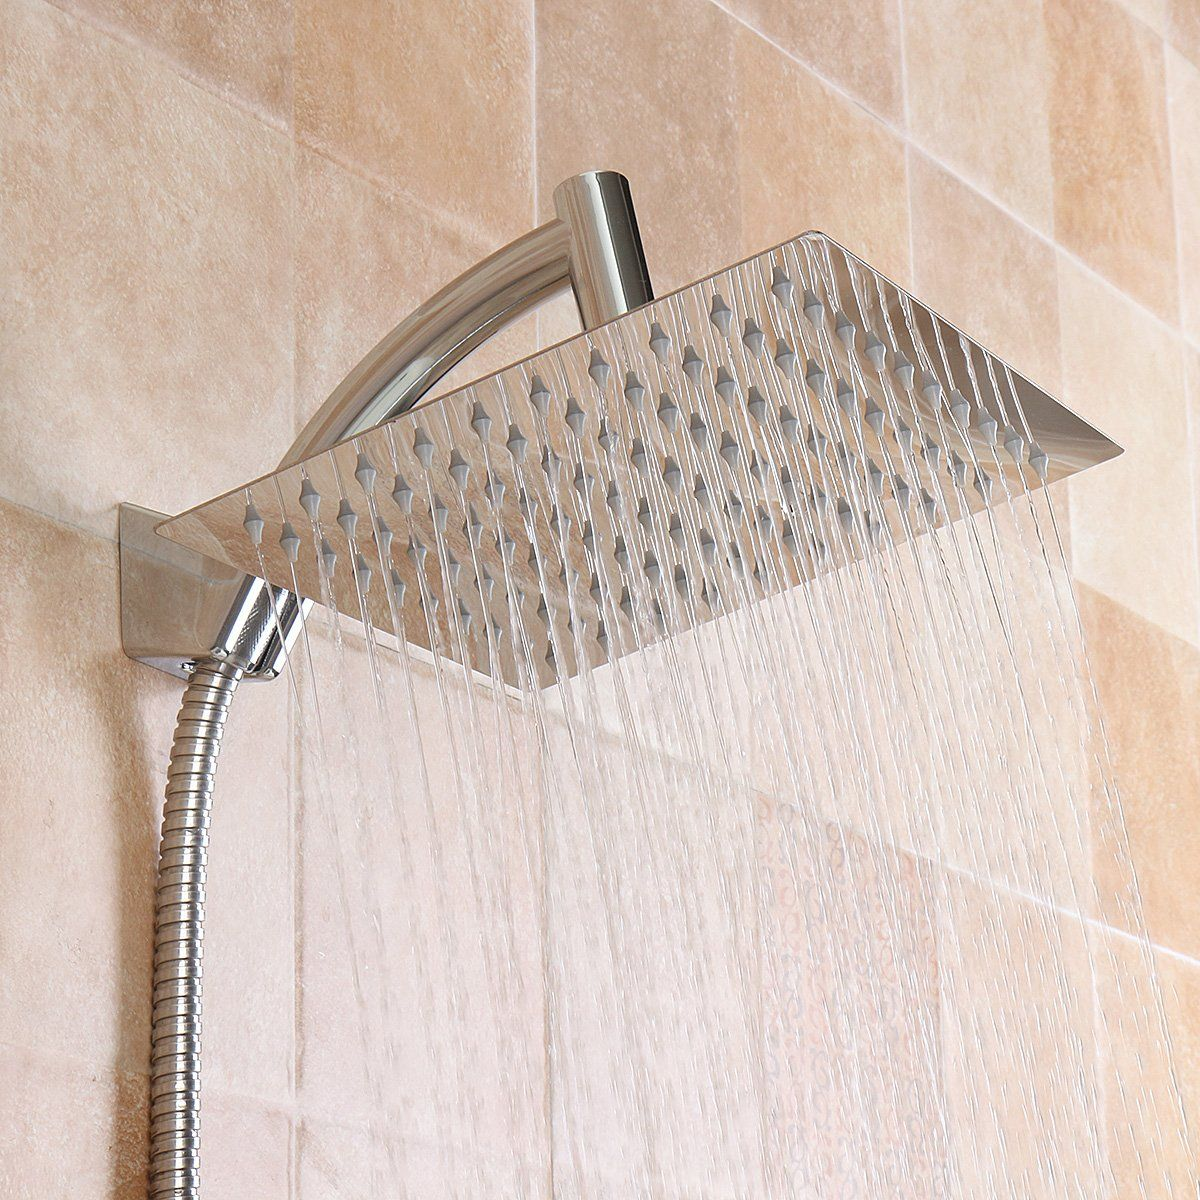 Square 8 Inch Rainfall Shower Head Extension With Shower Arm Hose Kit Overhead In 2020 Shower Head Extension Rainfall Shower Head Shower Heads